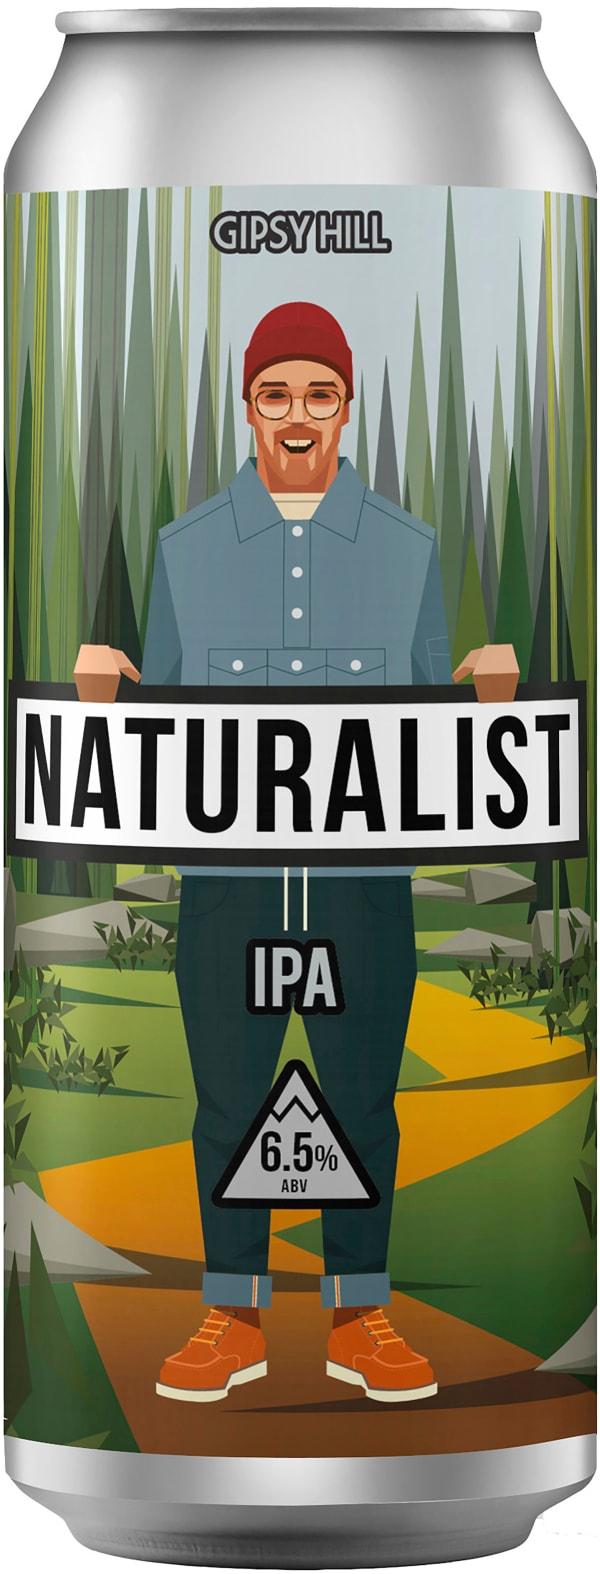 Gipsy Hill Naturalist IPA can